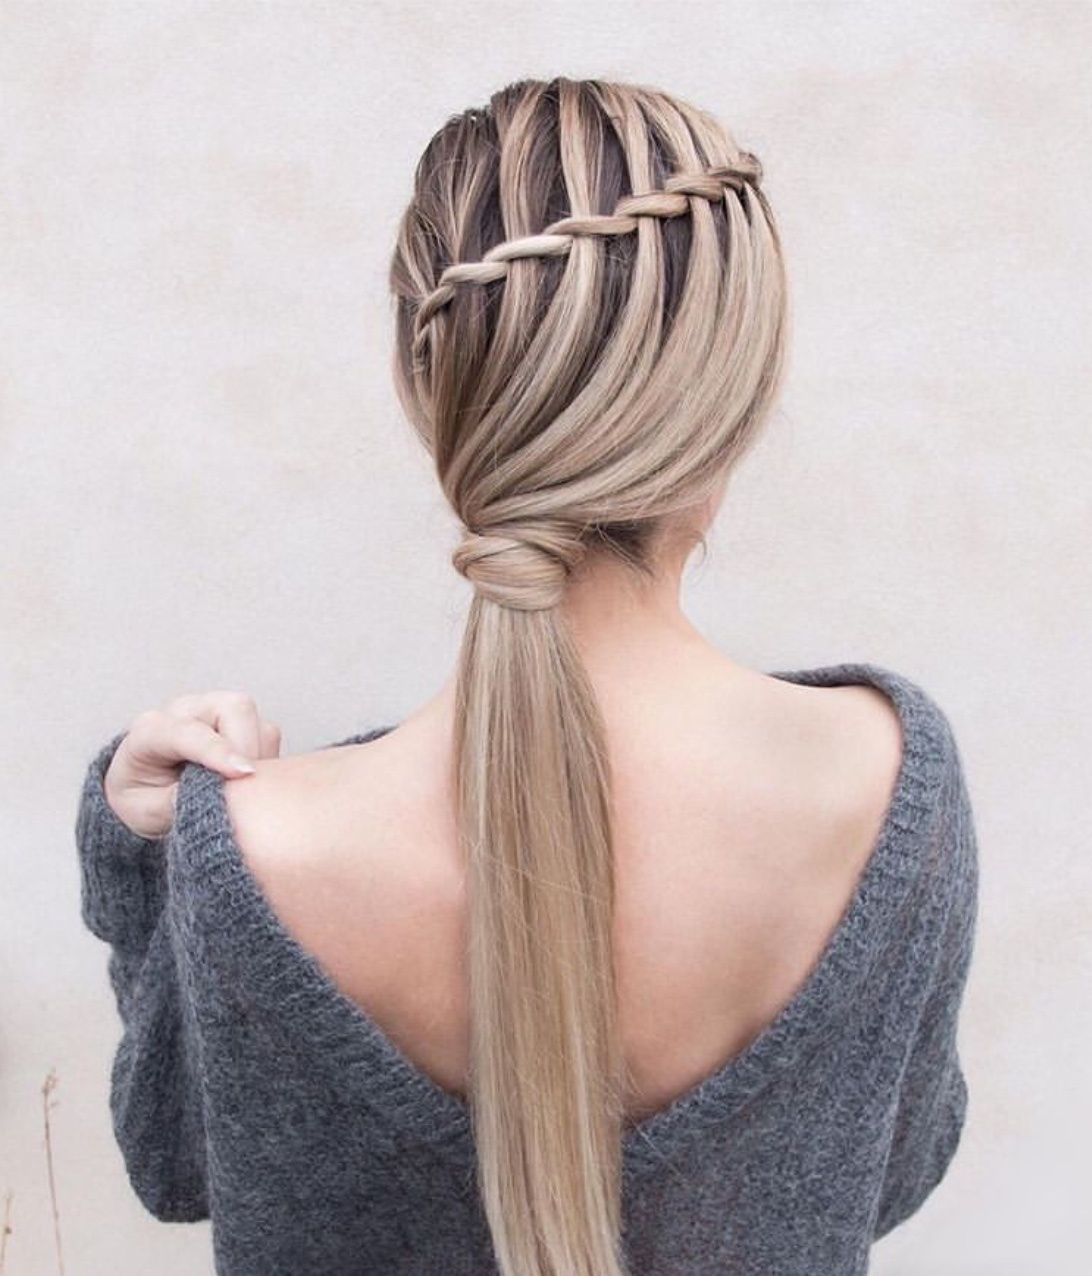 Pin By Wonder Cottage On Beauty In 2020 Easy Hairstyles Hair Styles Braided Hairstyles Easy